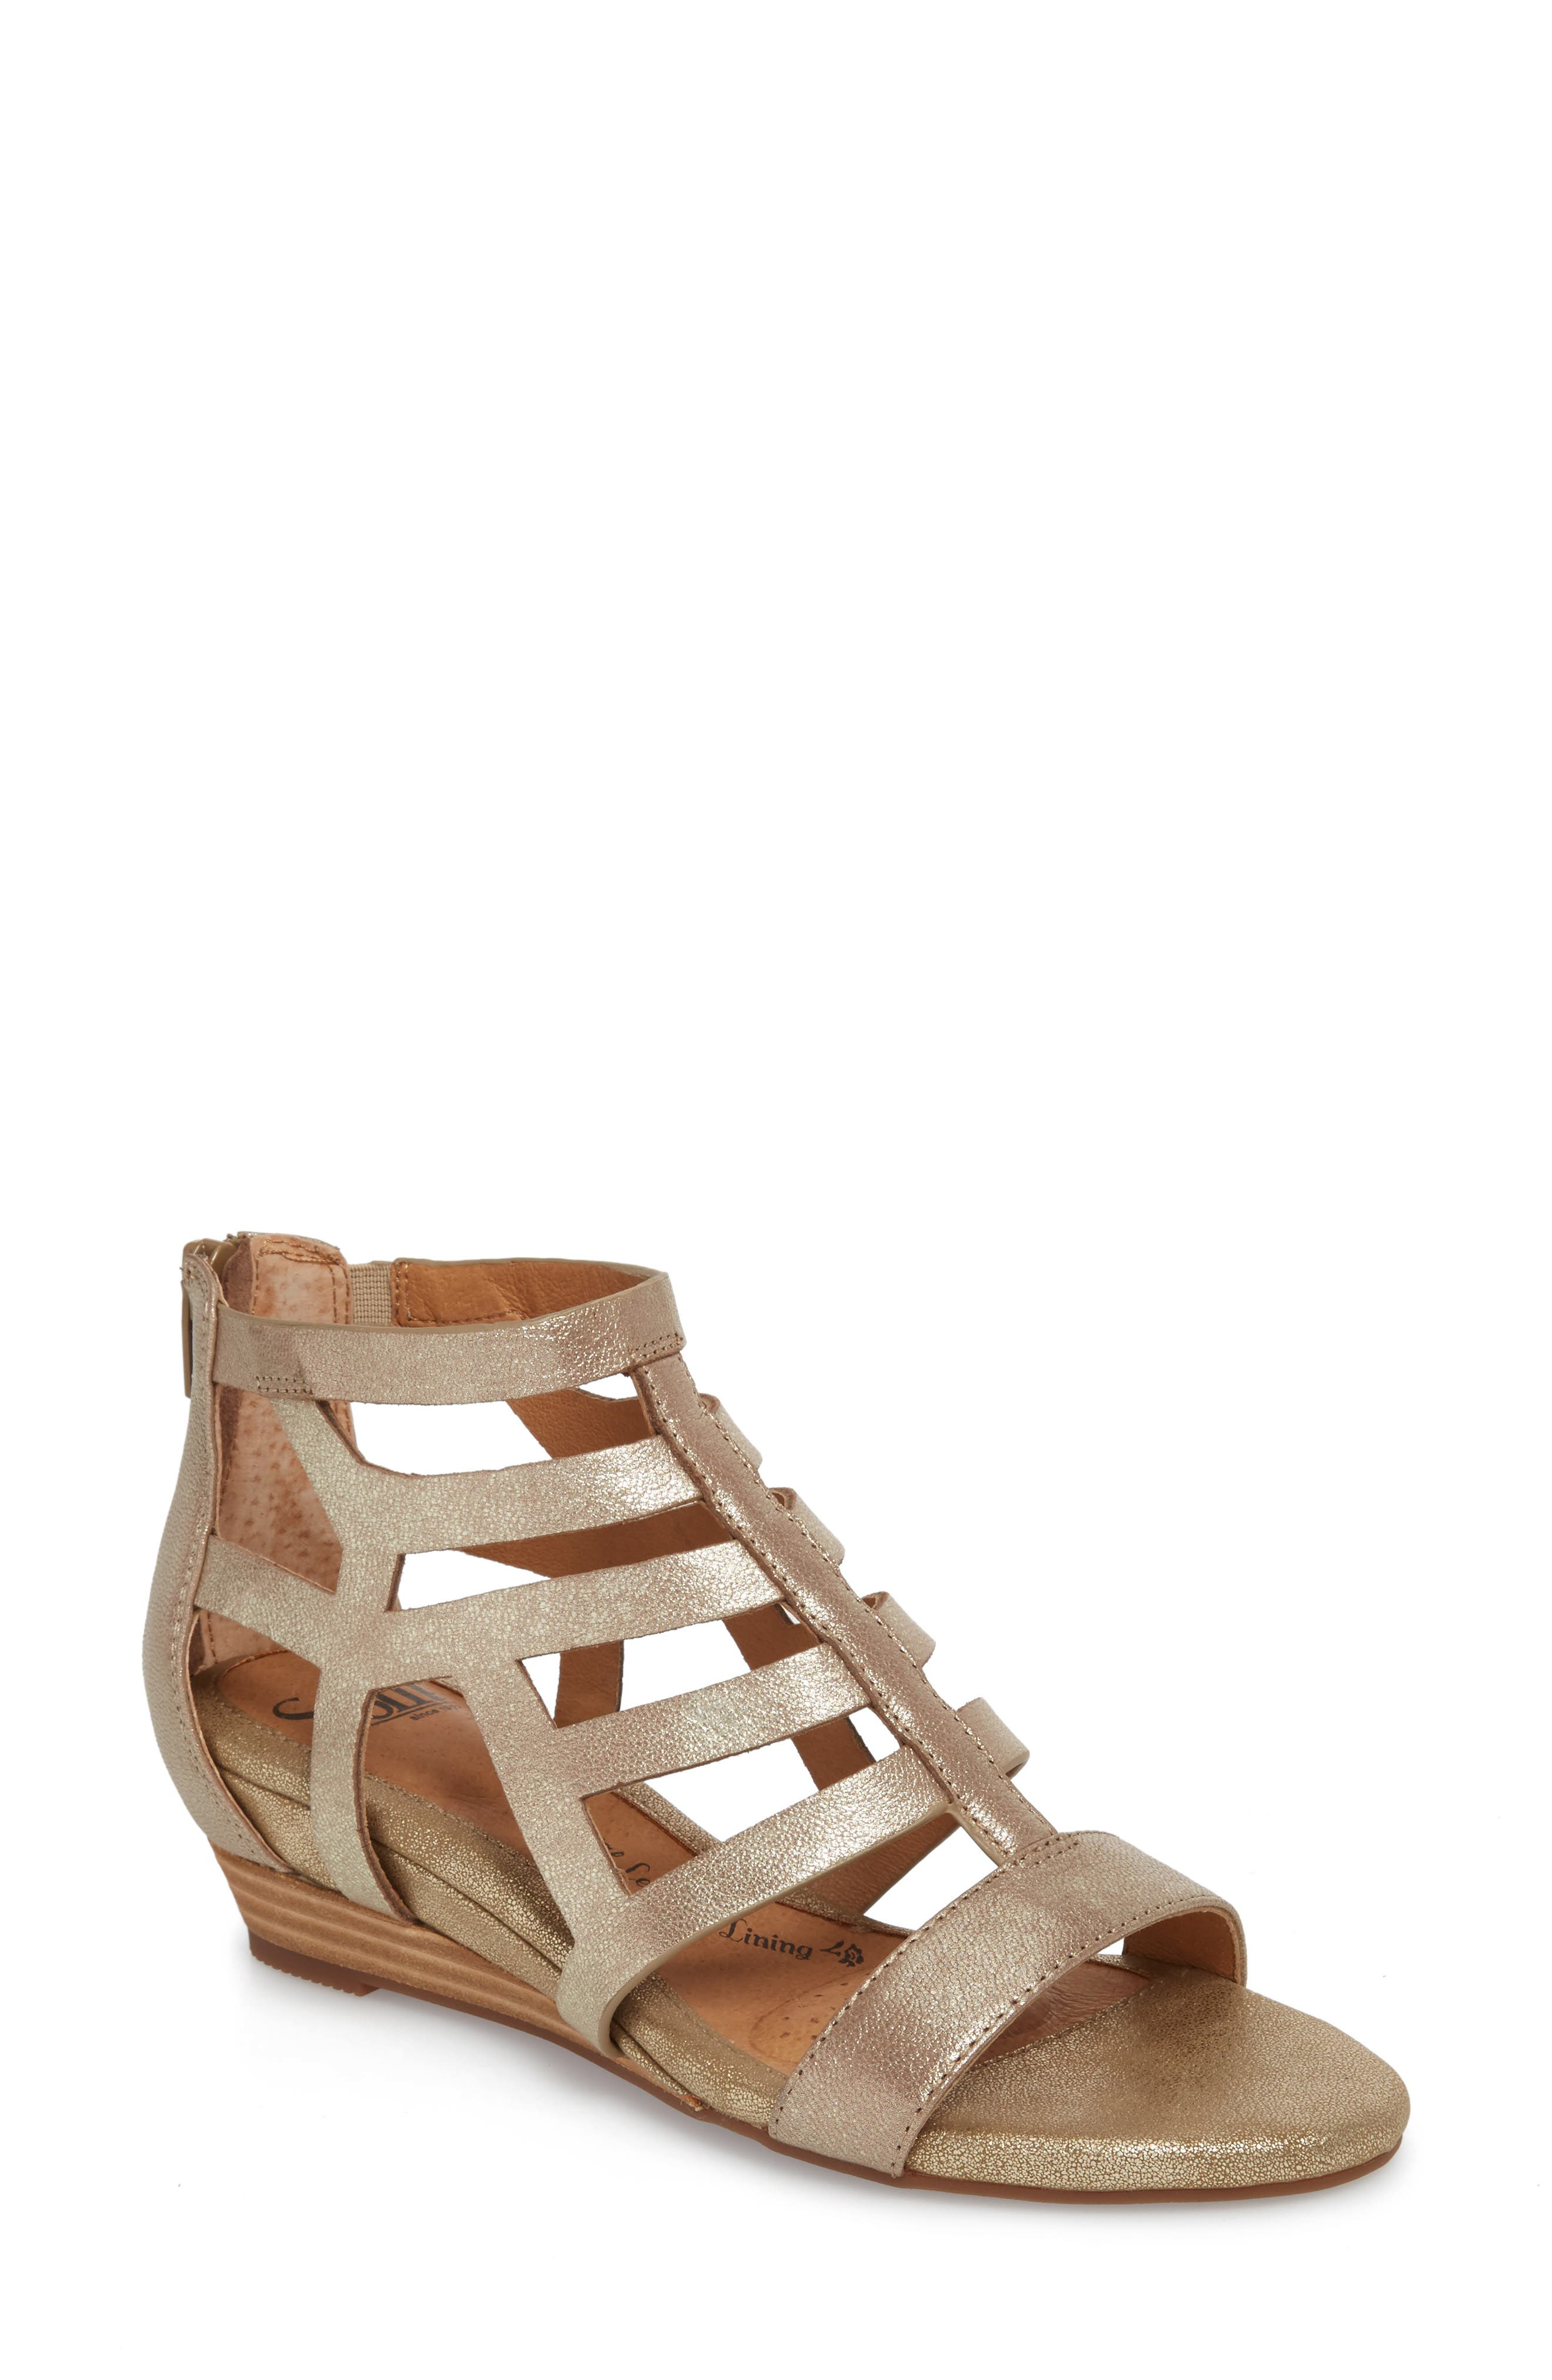 Ravello Wedge Sandal,                         Main,                         color, Satin Gold Leather